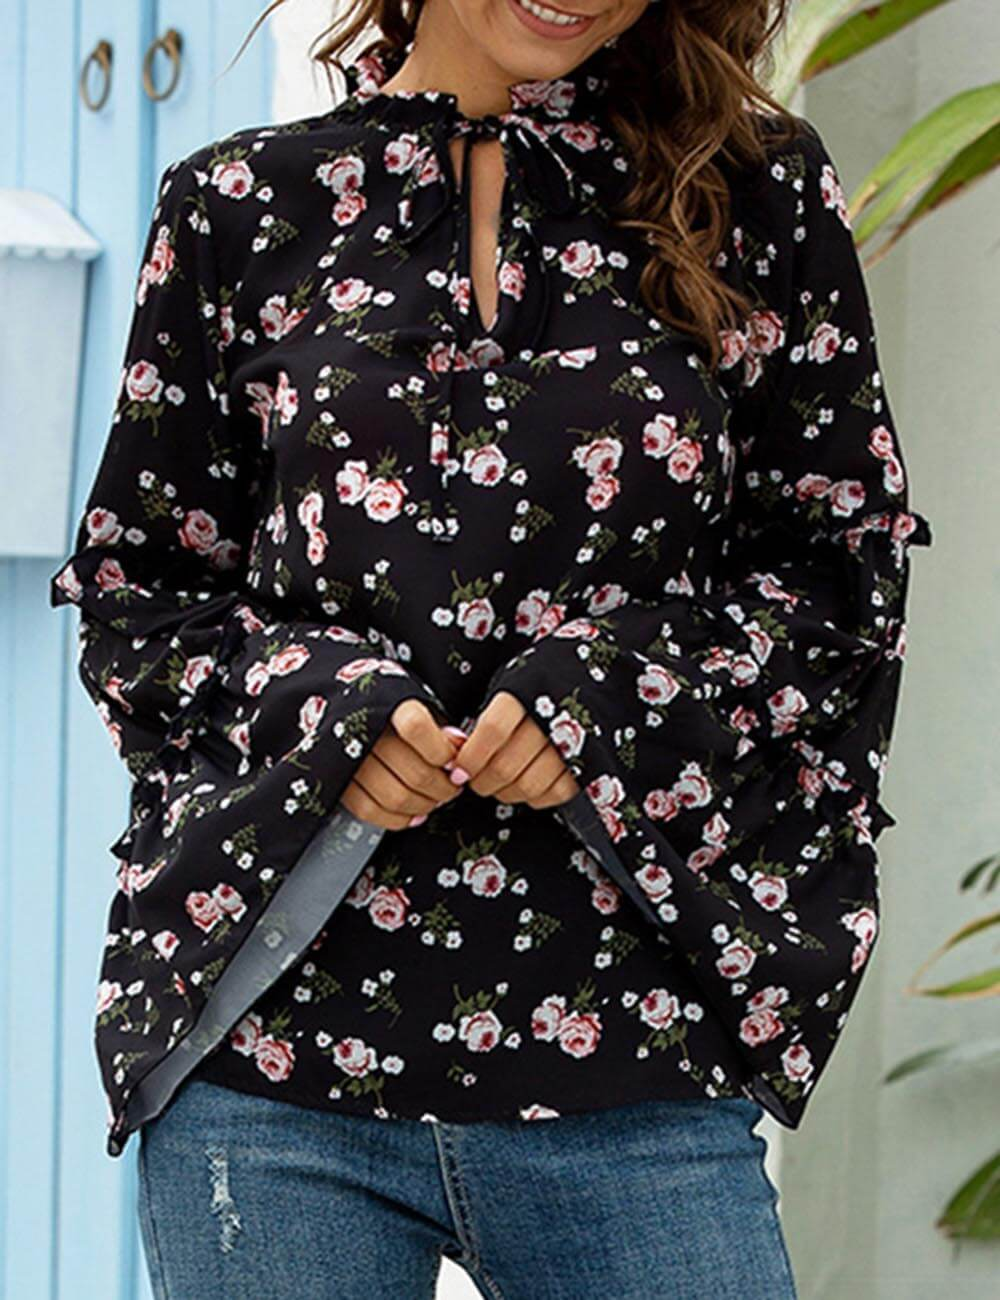 Women's Boho Floral Printed Tie Neck Tops Summer Flared Bell Sleeve Chiffon Loose Blouses T-Shirt